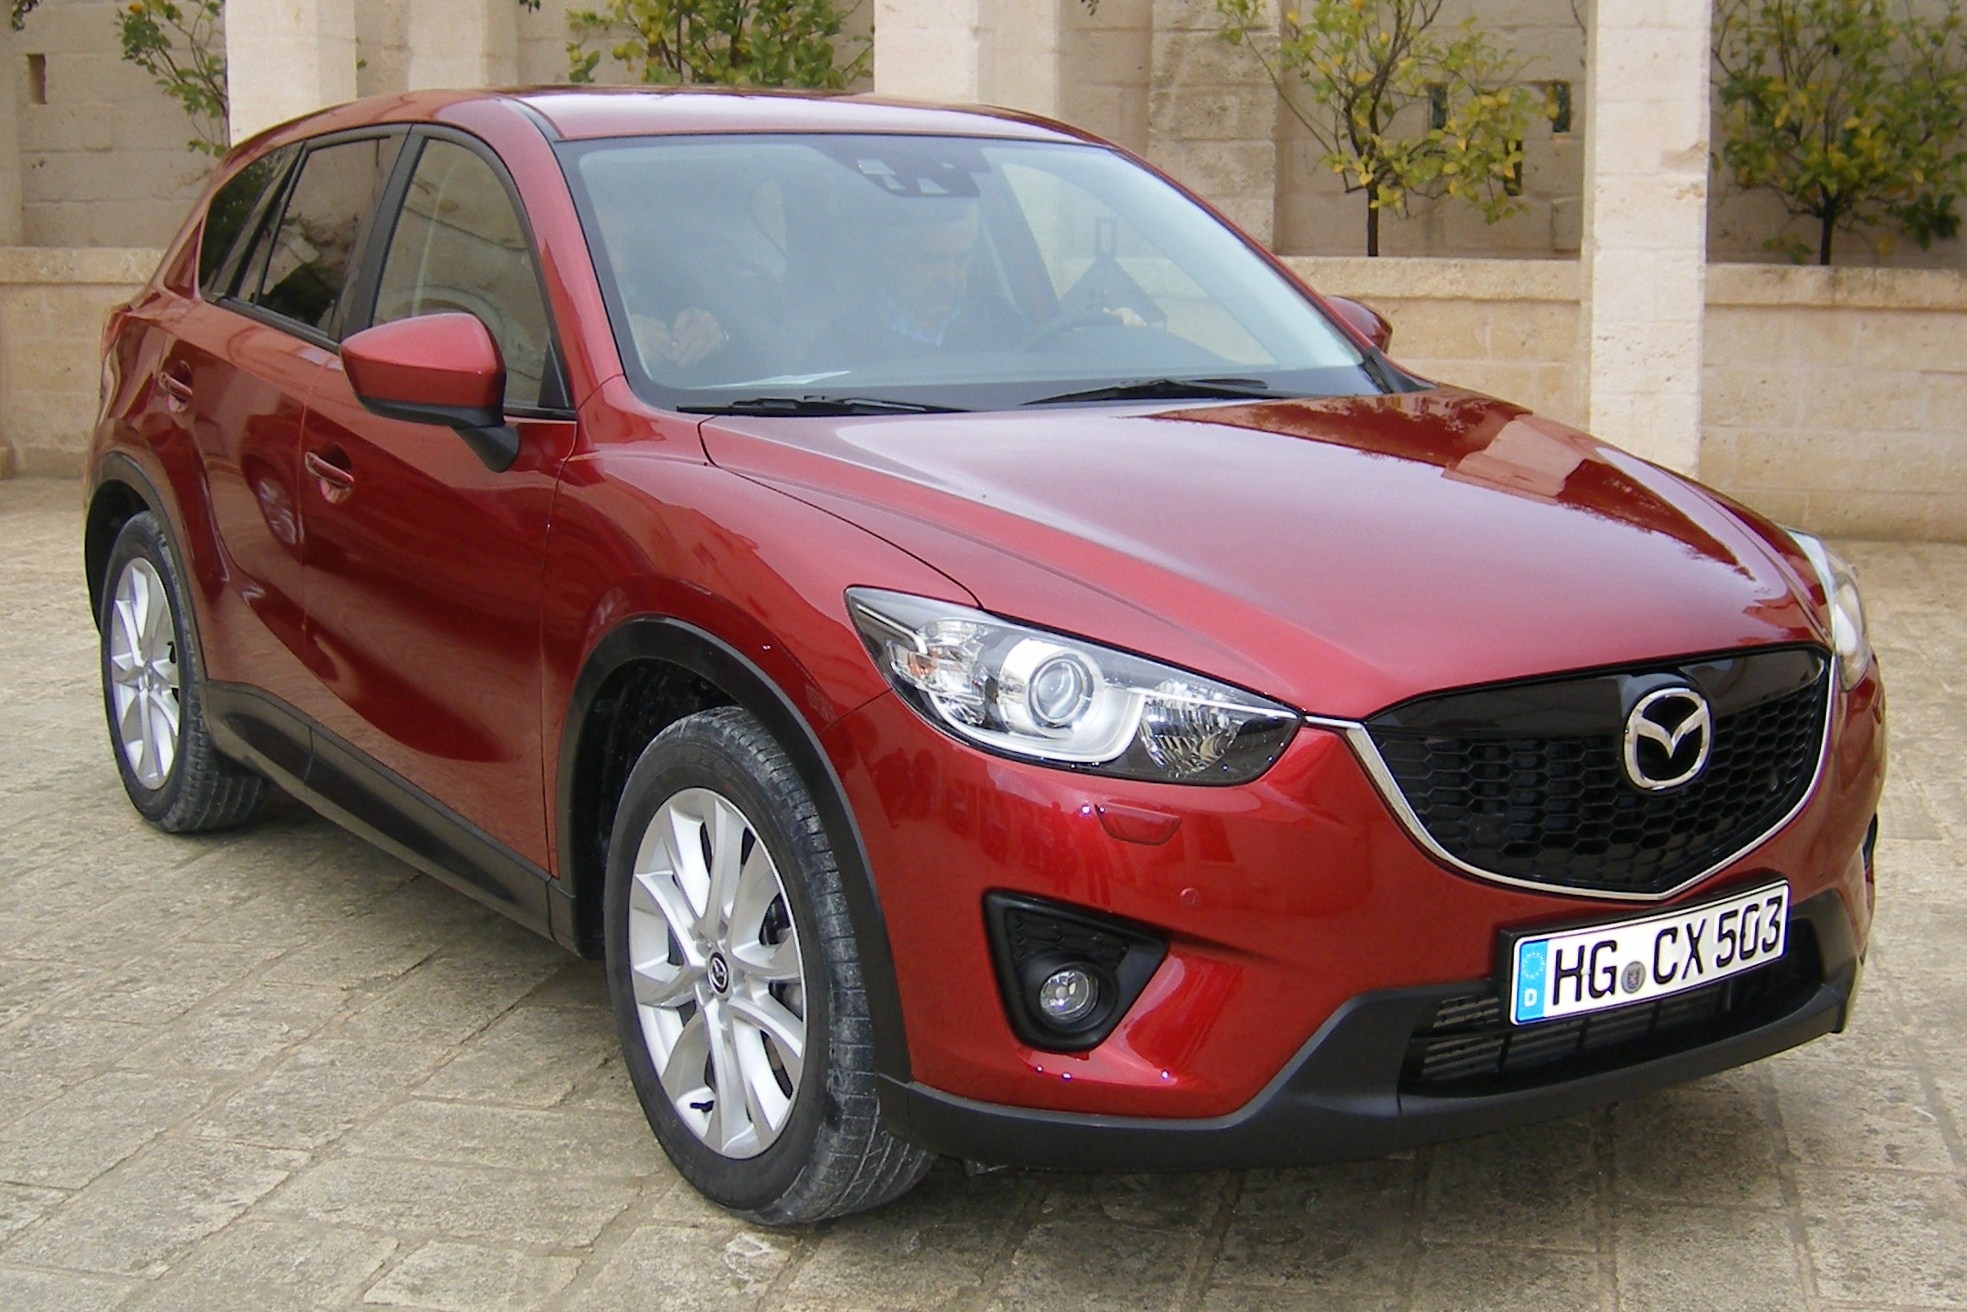 file:mazda cx5 - wikimedia commons